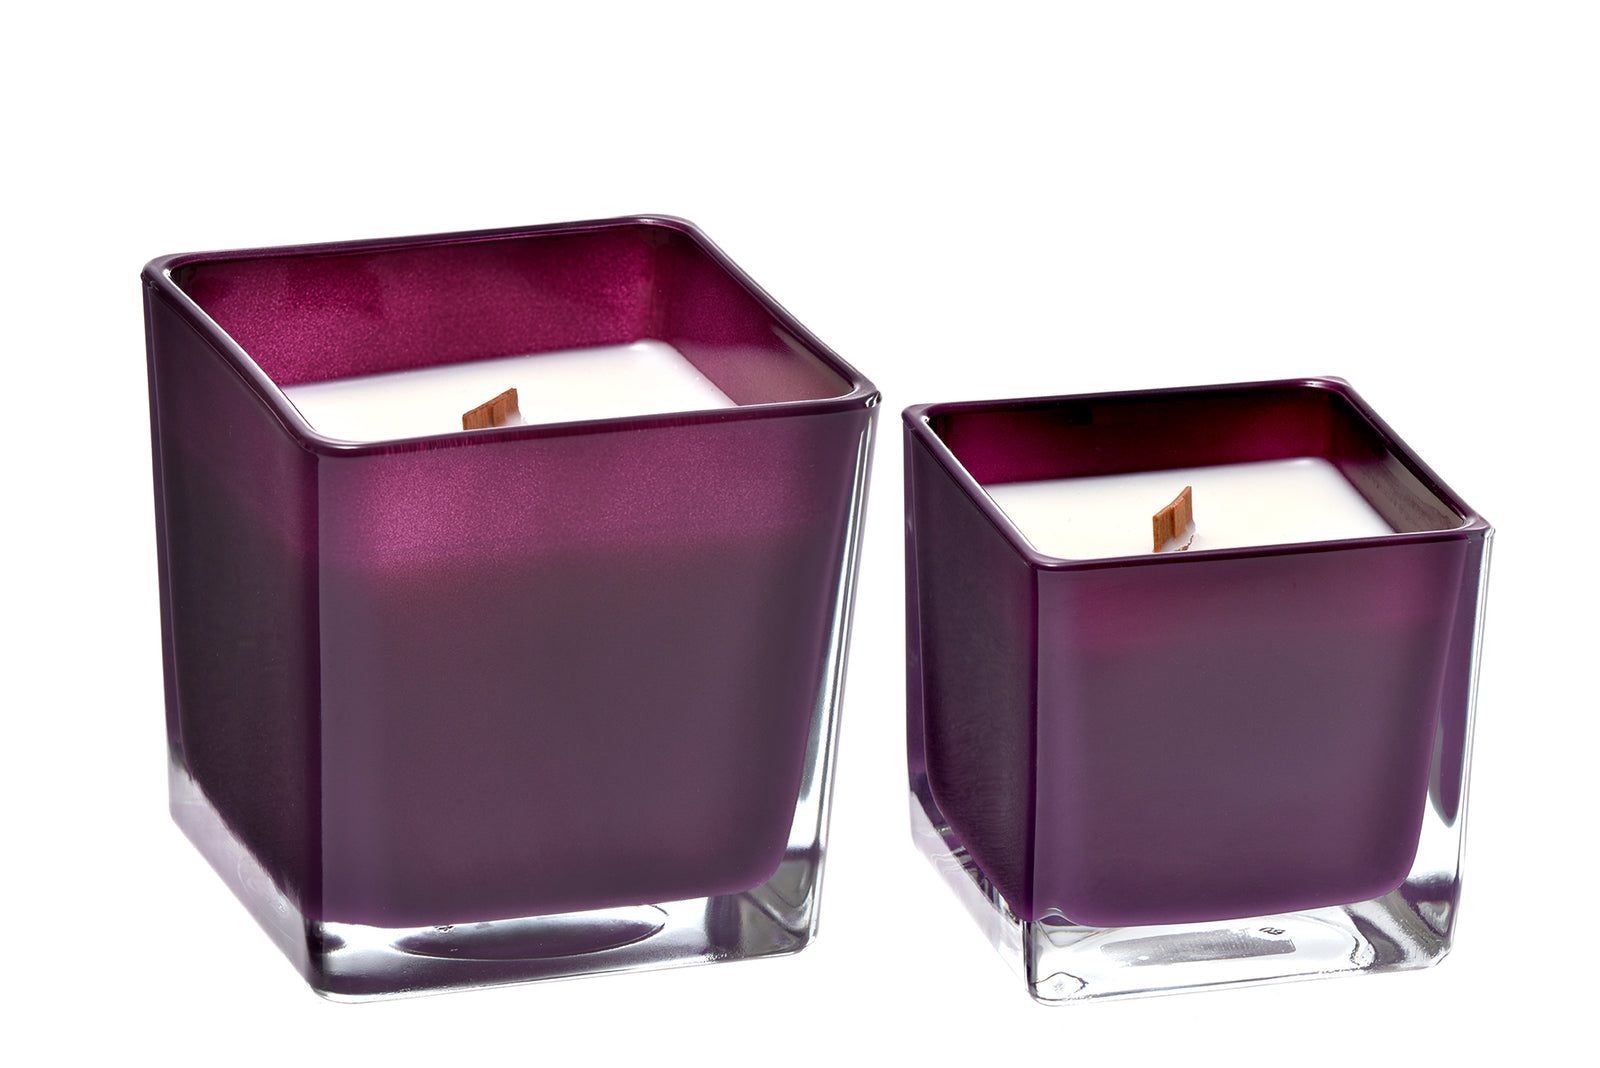 Geranium and lavender coconut wax candle in purple glass holder